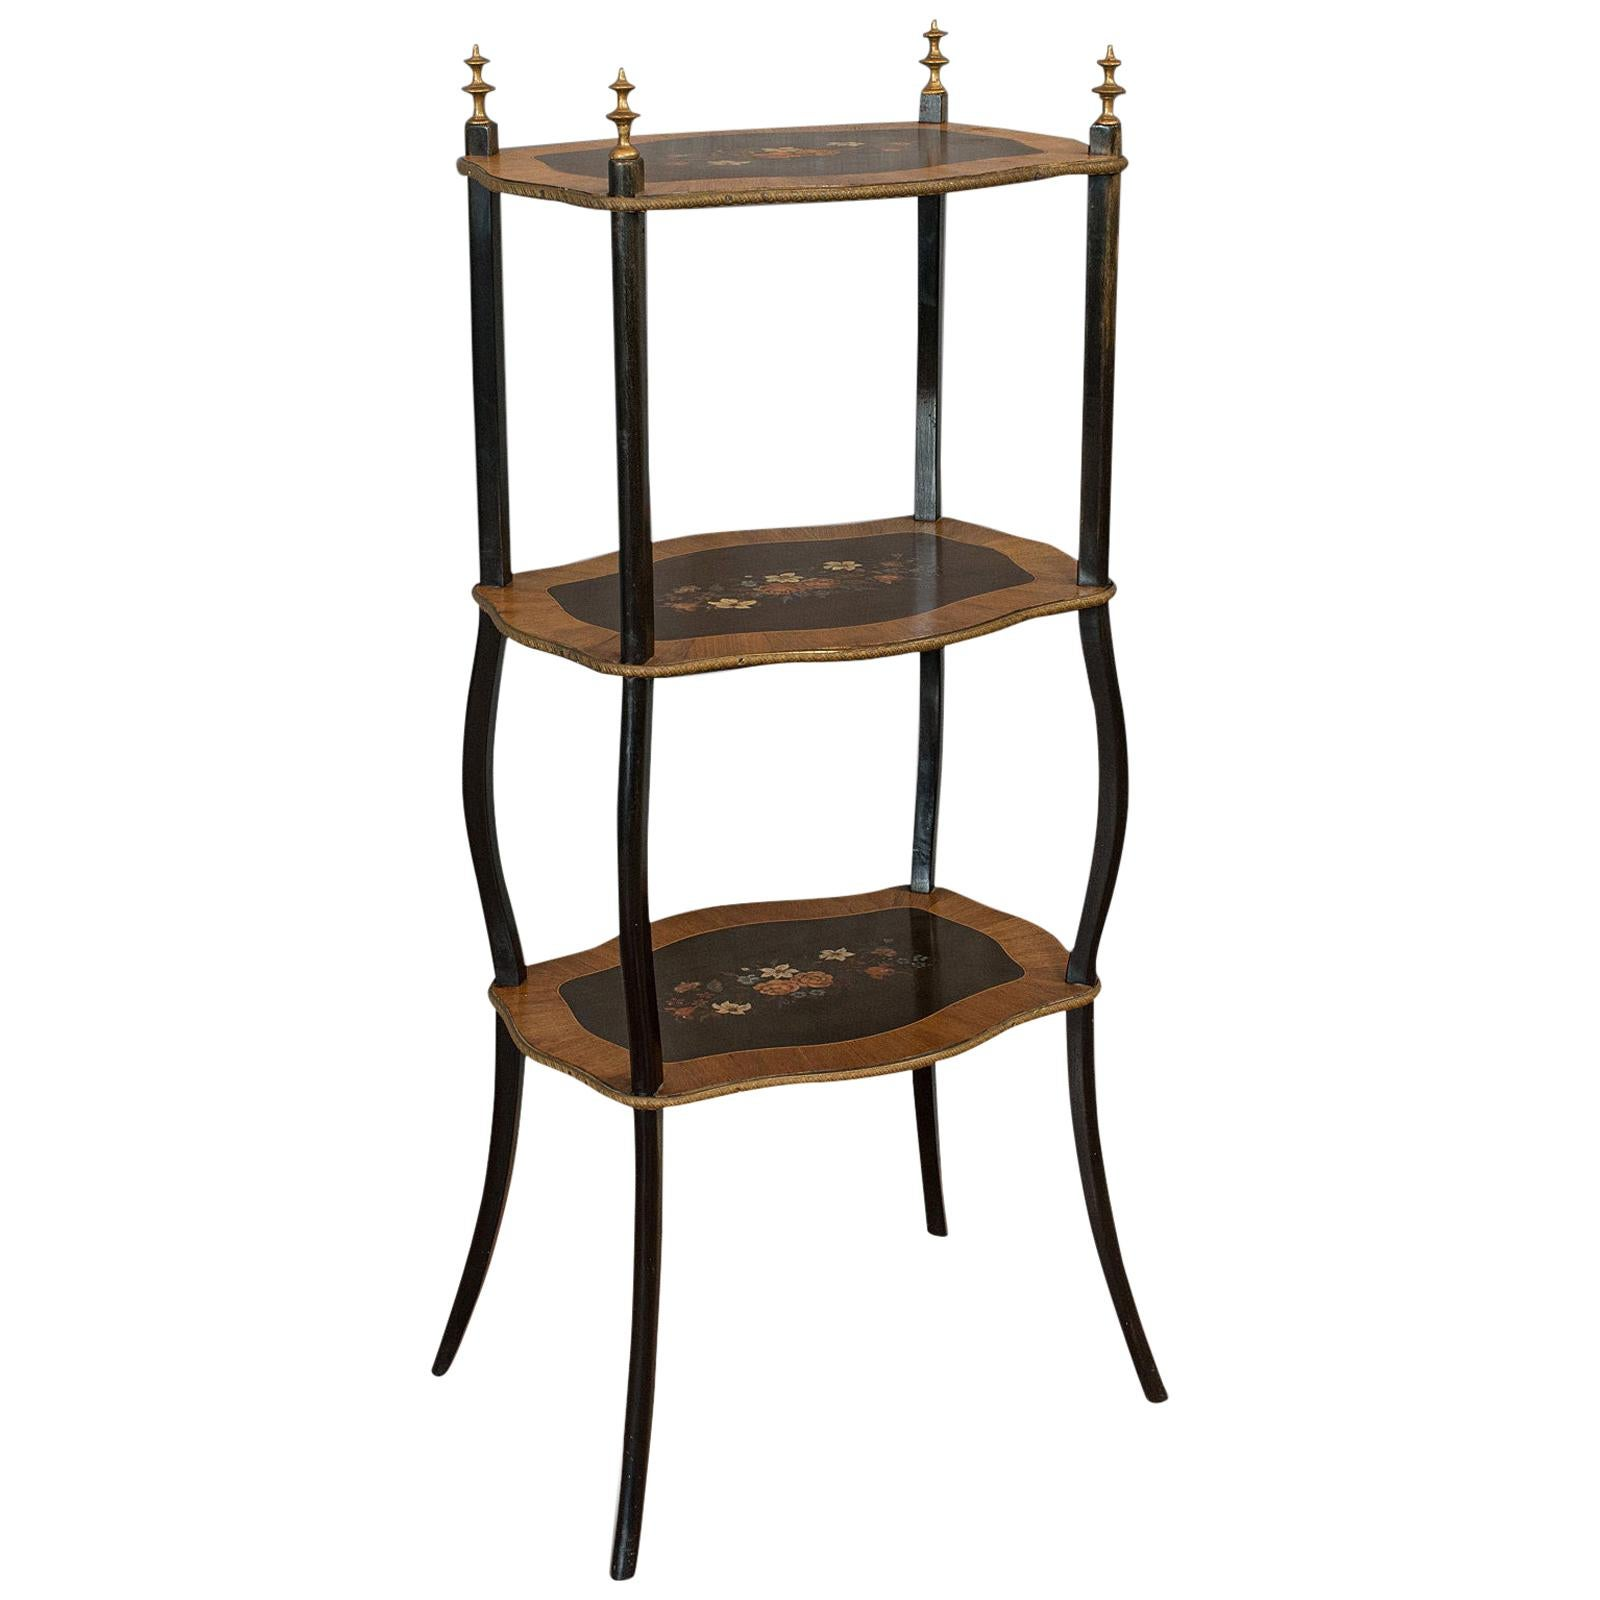 Antique Étagère, French, Mahogany, 3-Tier, Plant, Stand, Whatnot, Victorian